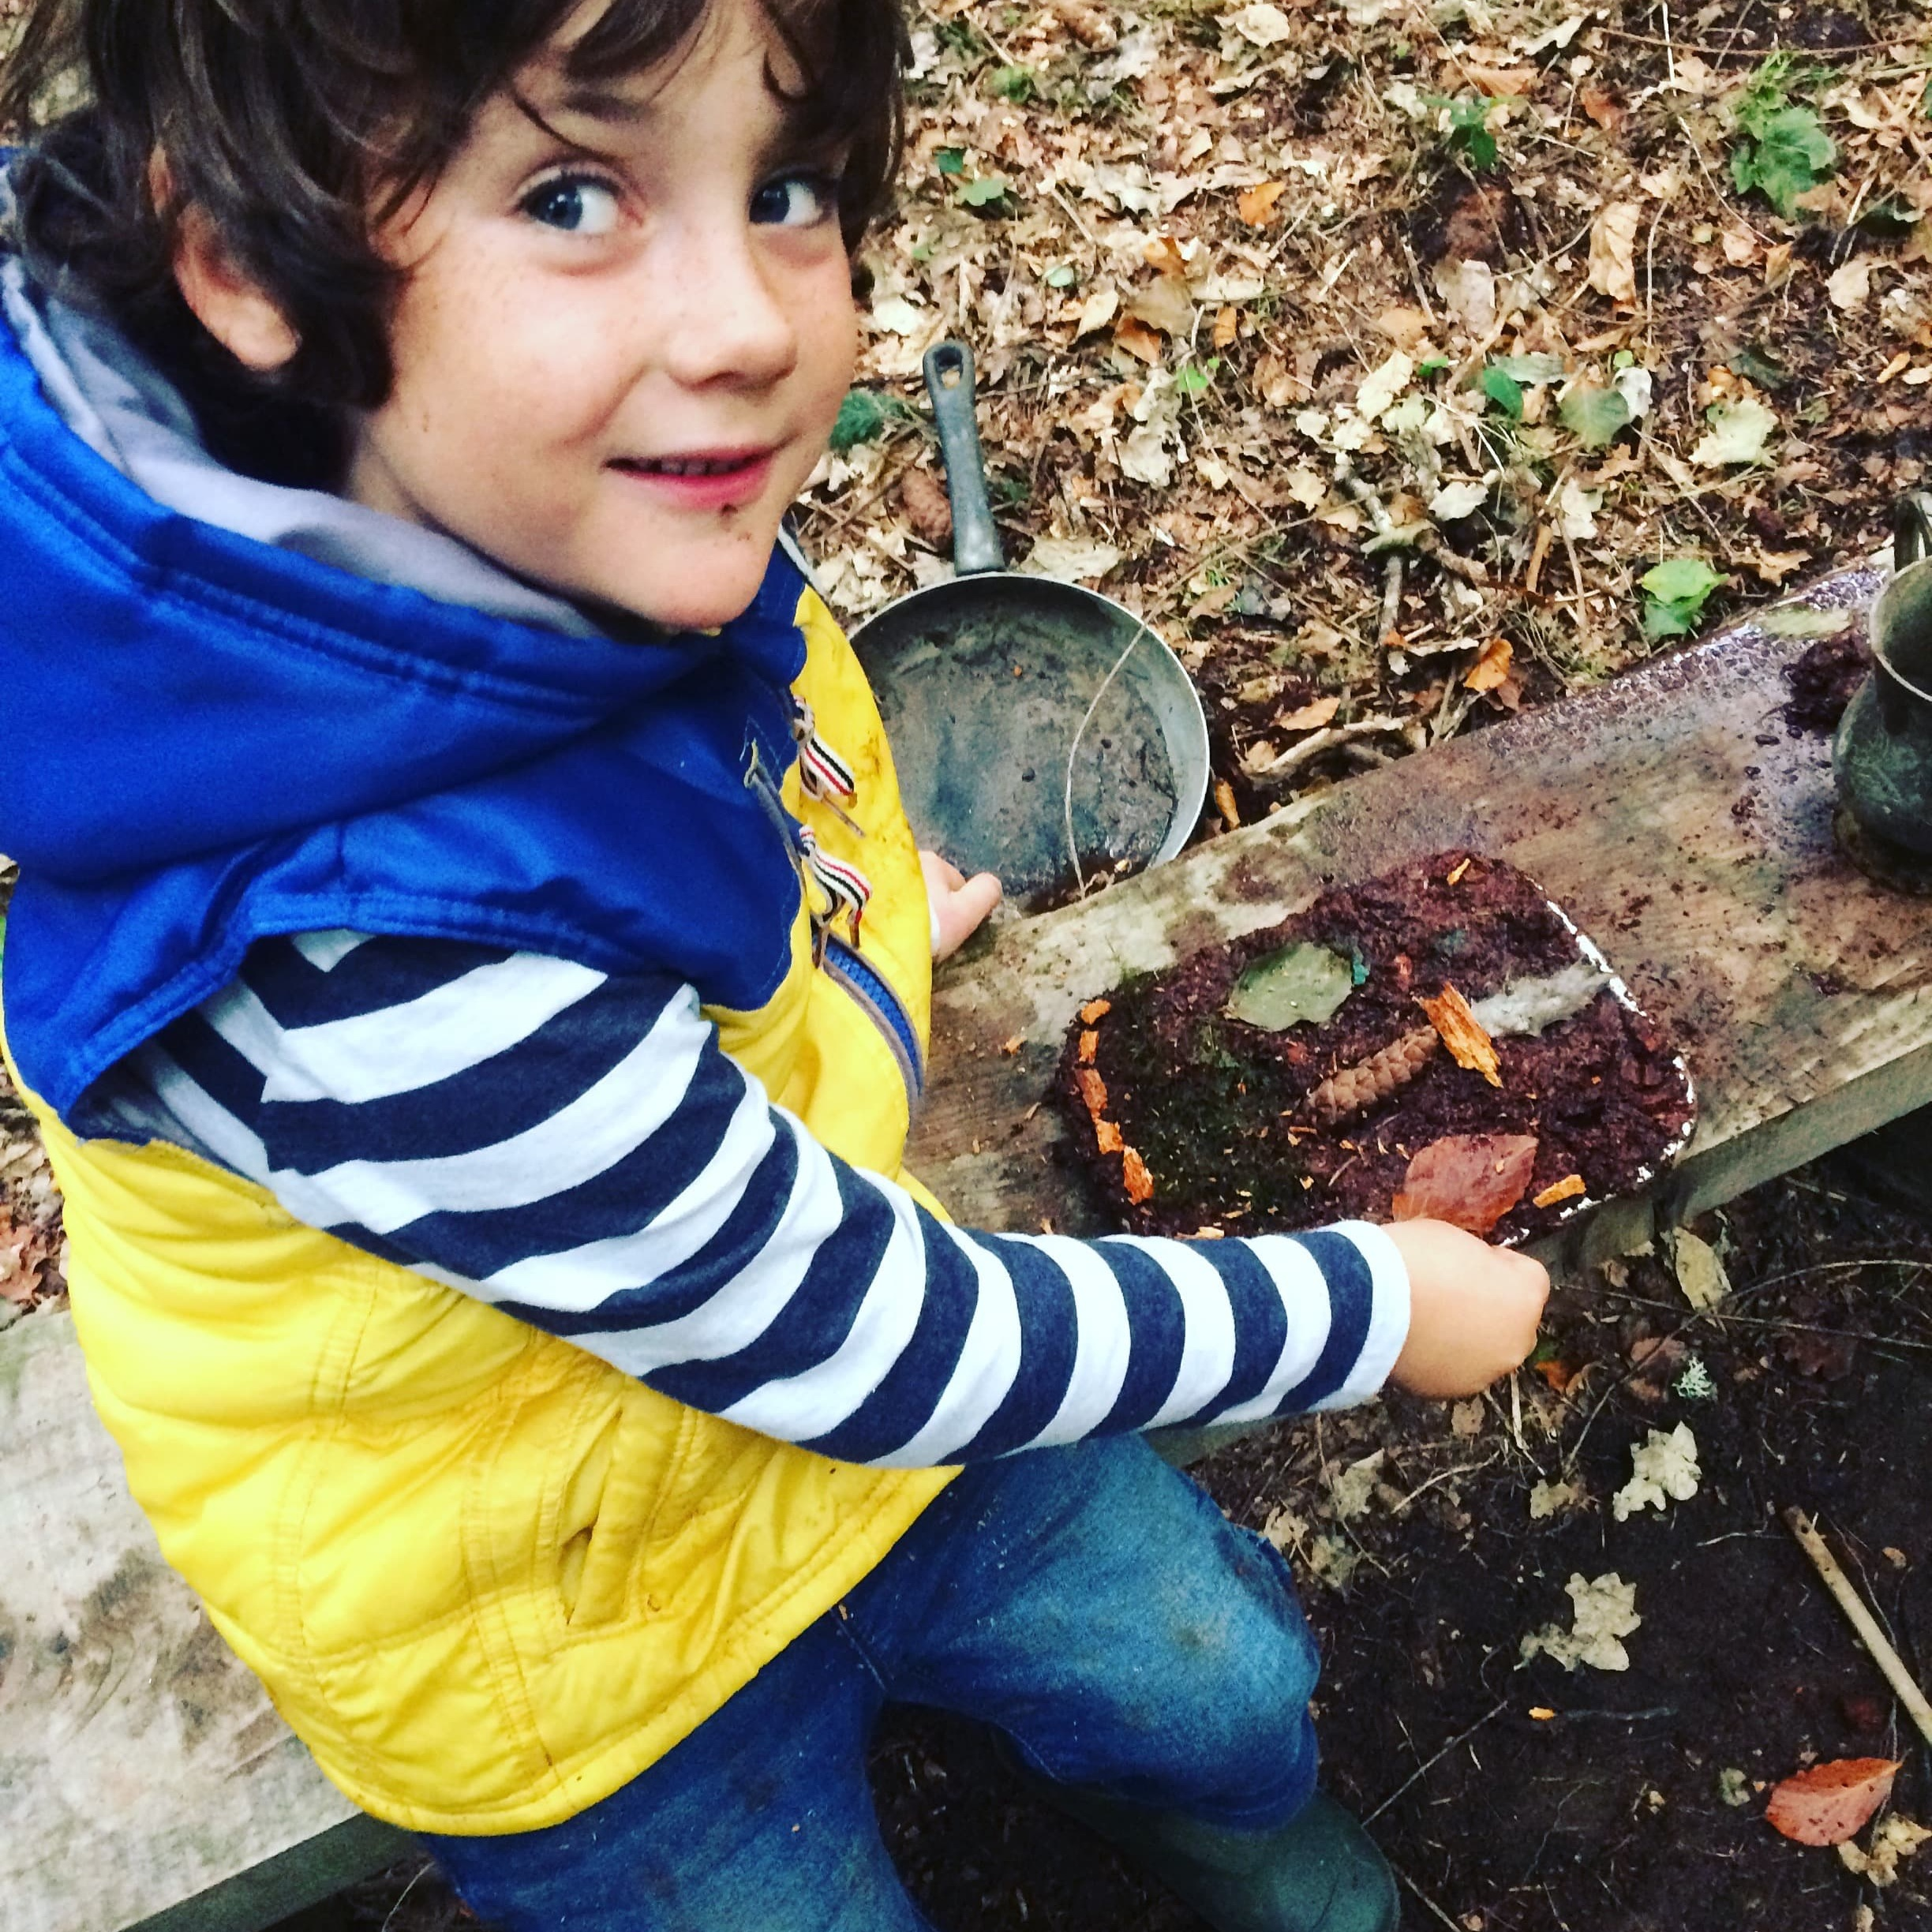 Creative Play - Make your own mud pies, pine needle soup or whatever you want! in the mud kitchen.